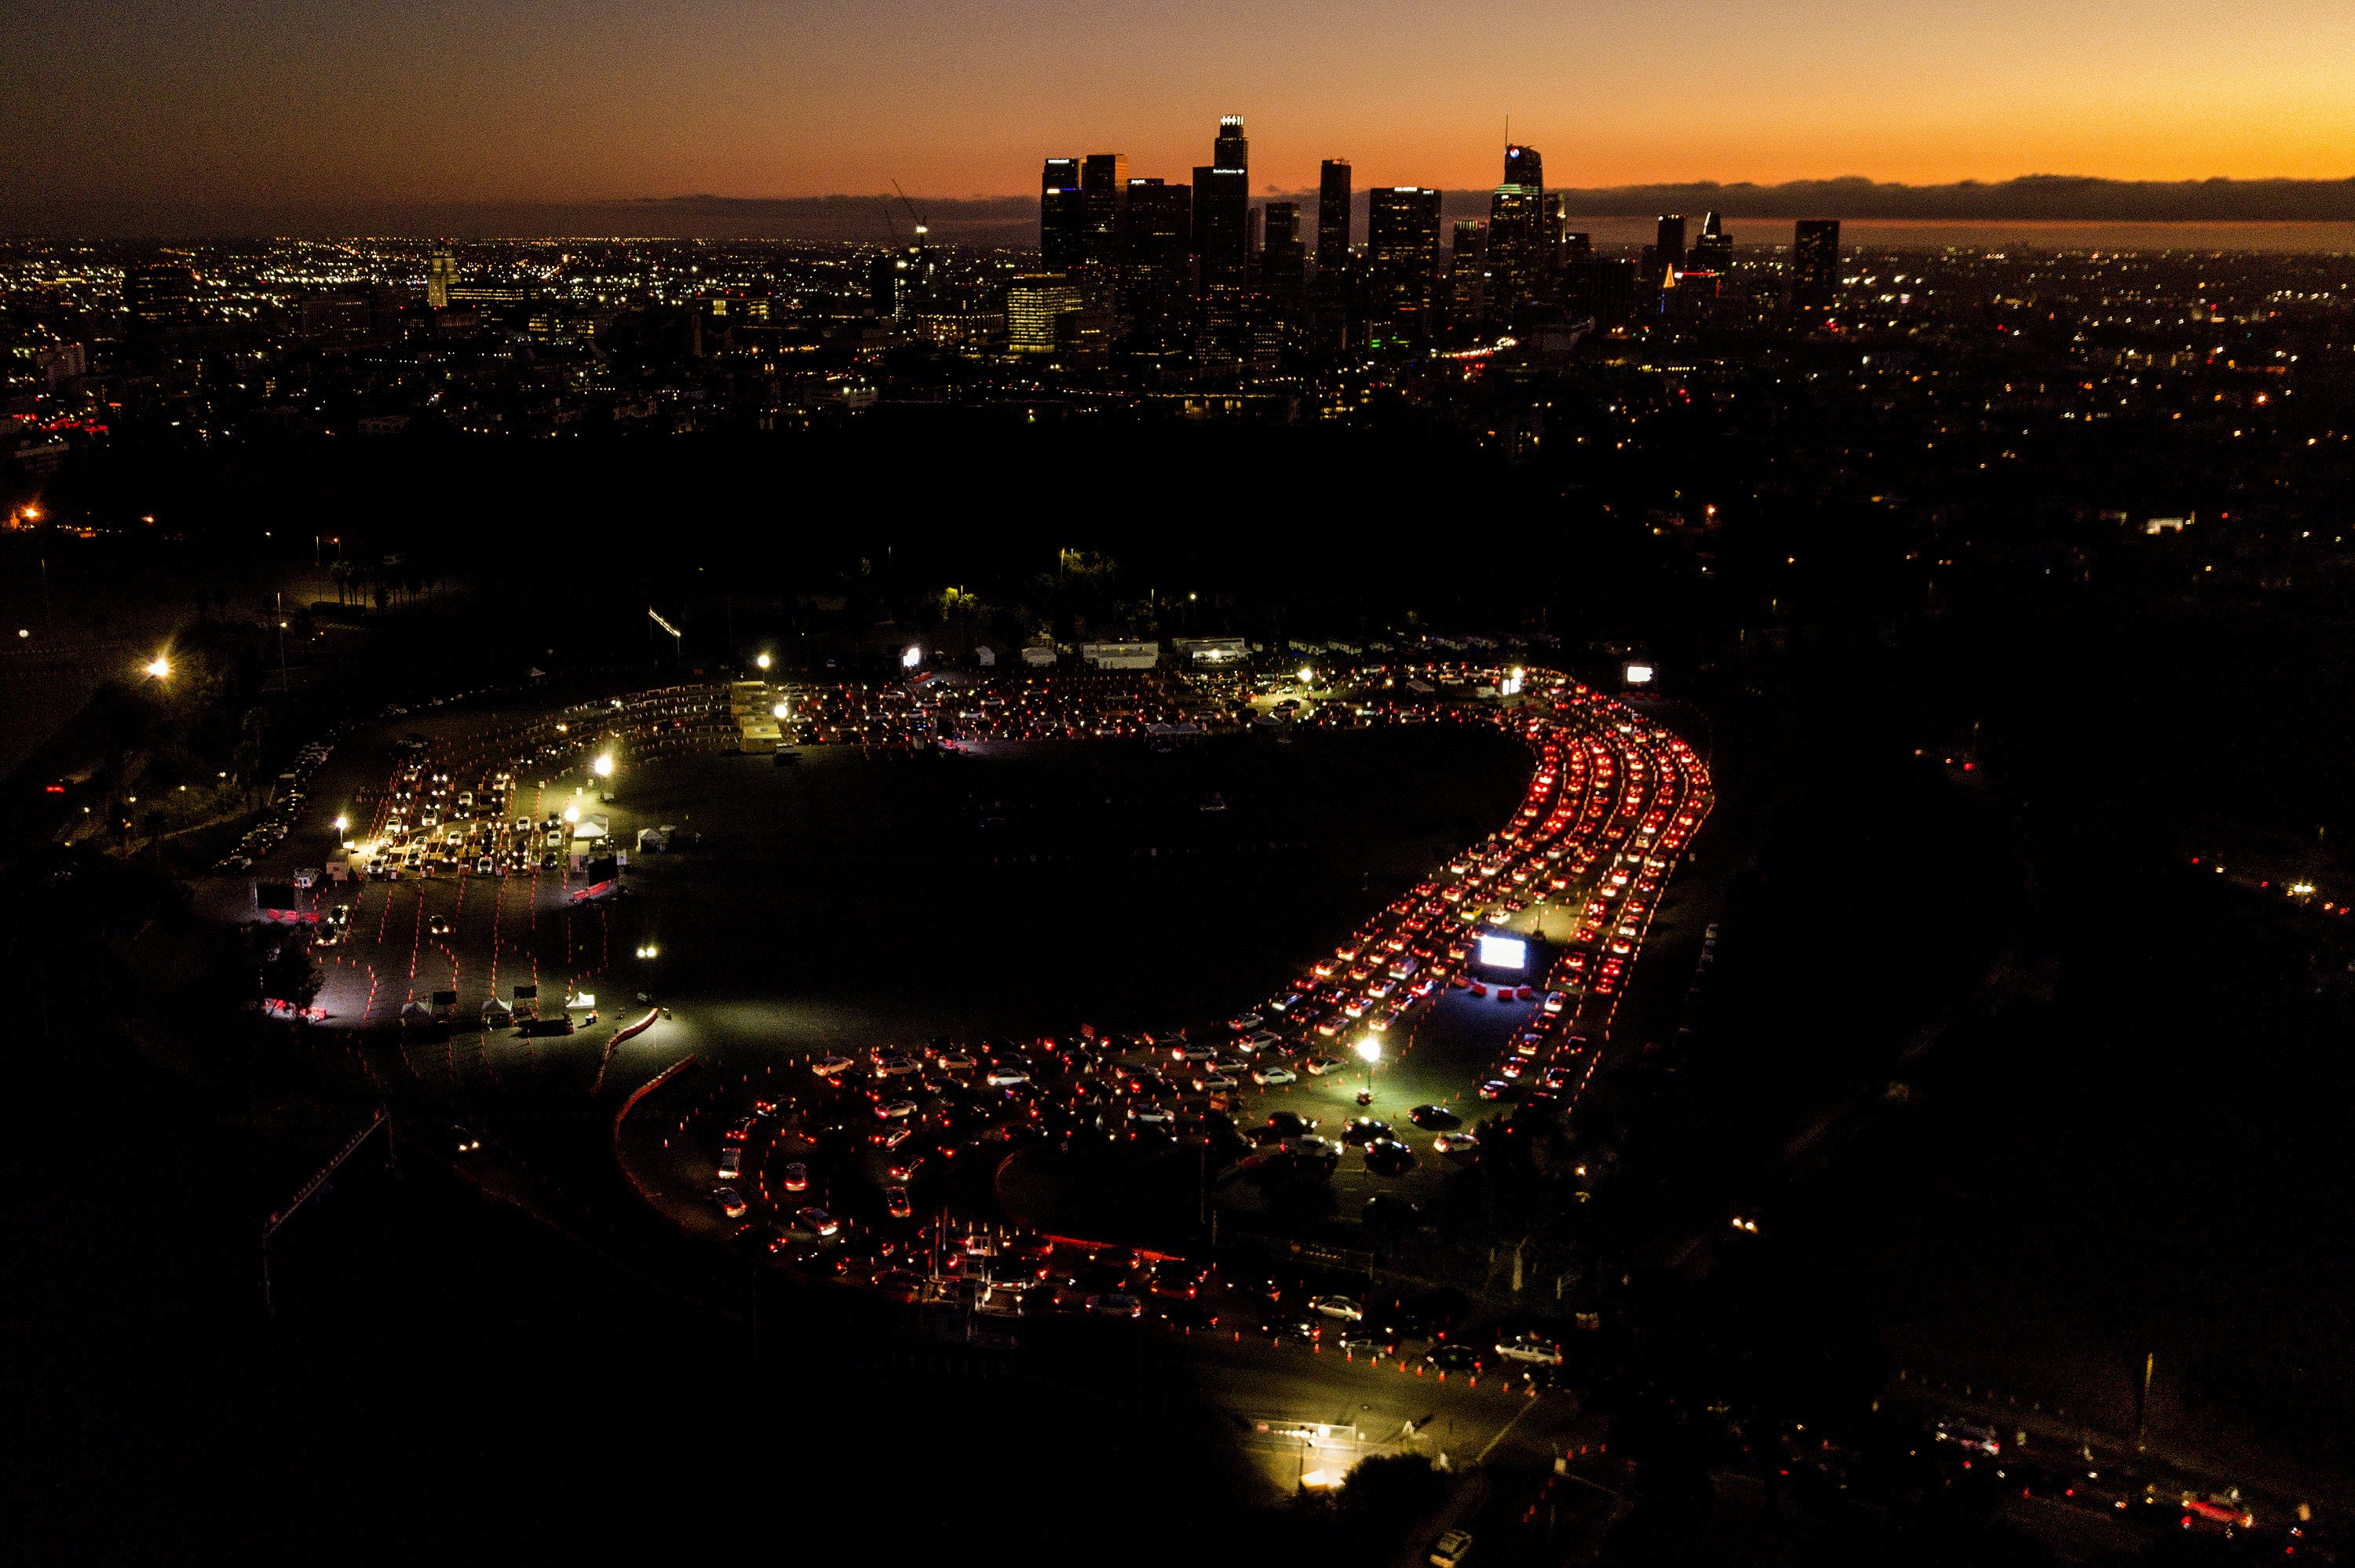 Los Angeles orders more restrictions as coronavirus surges – The Associated Press